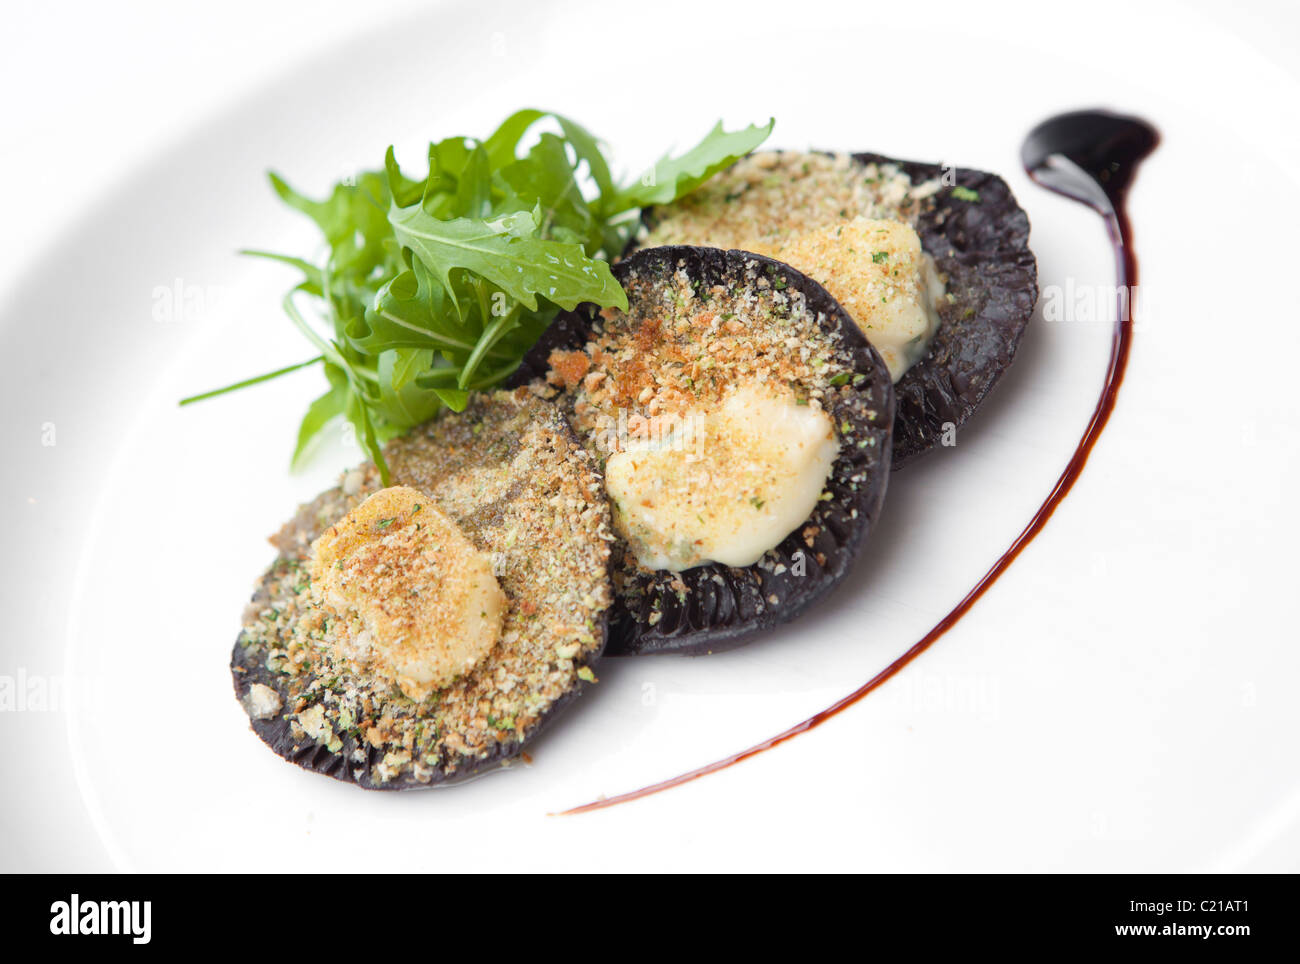 Starter of large flat mushrooms stuffed with breadcrumbs and cheese served with rocket salad and balsamic dressing. - Stock Image